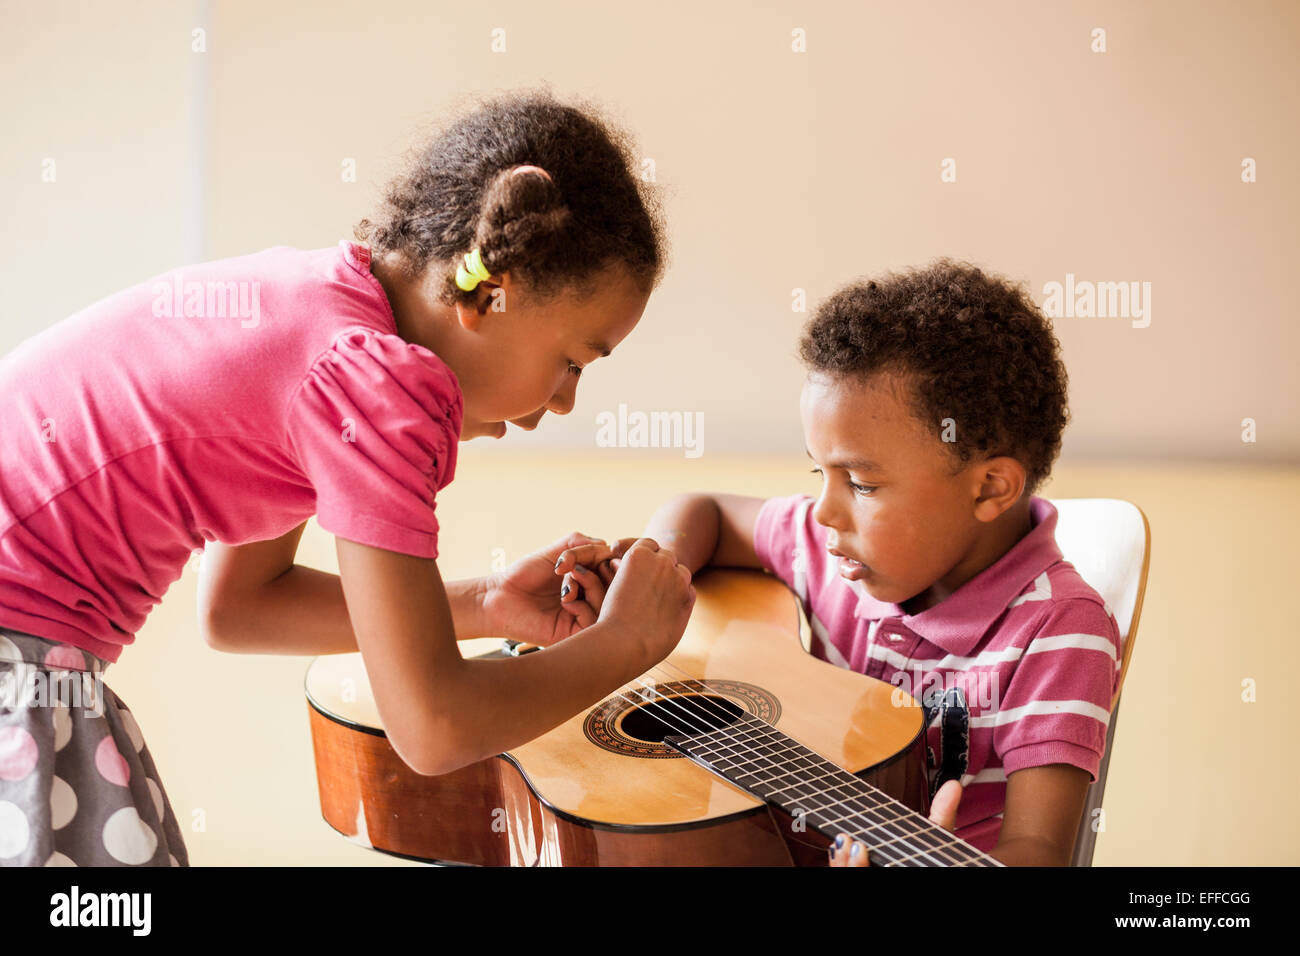 how to teach a child to play guitar